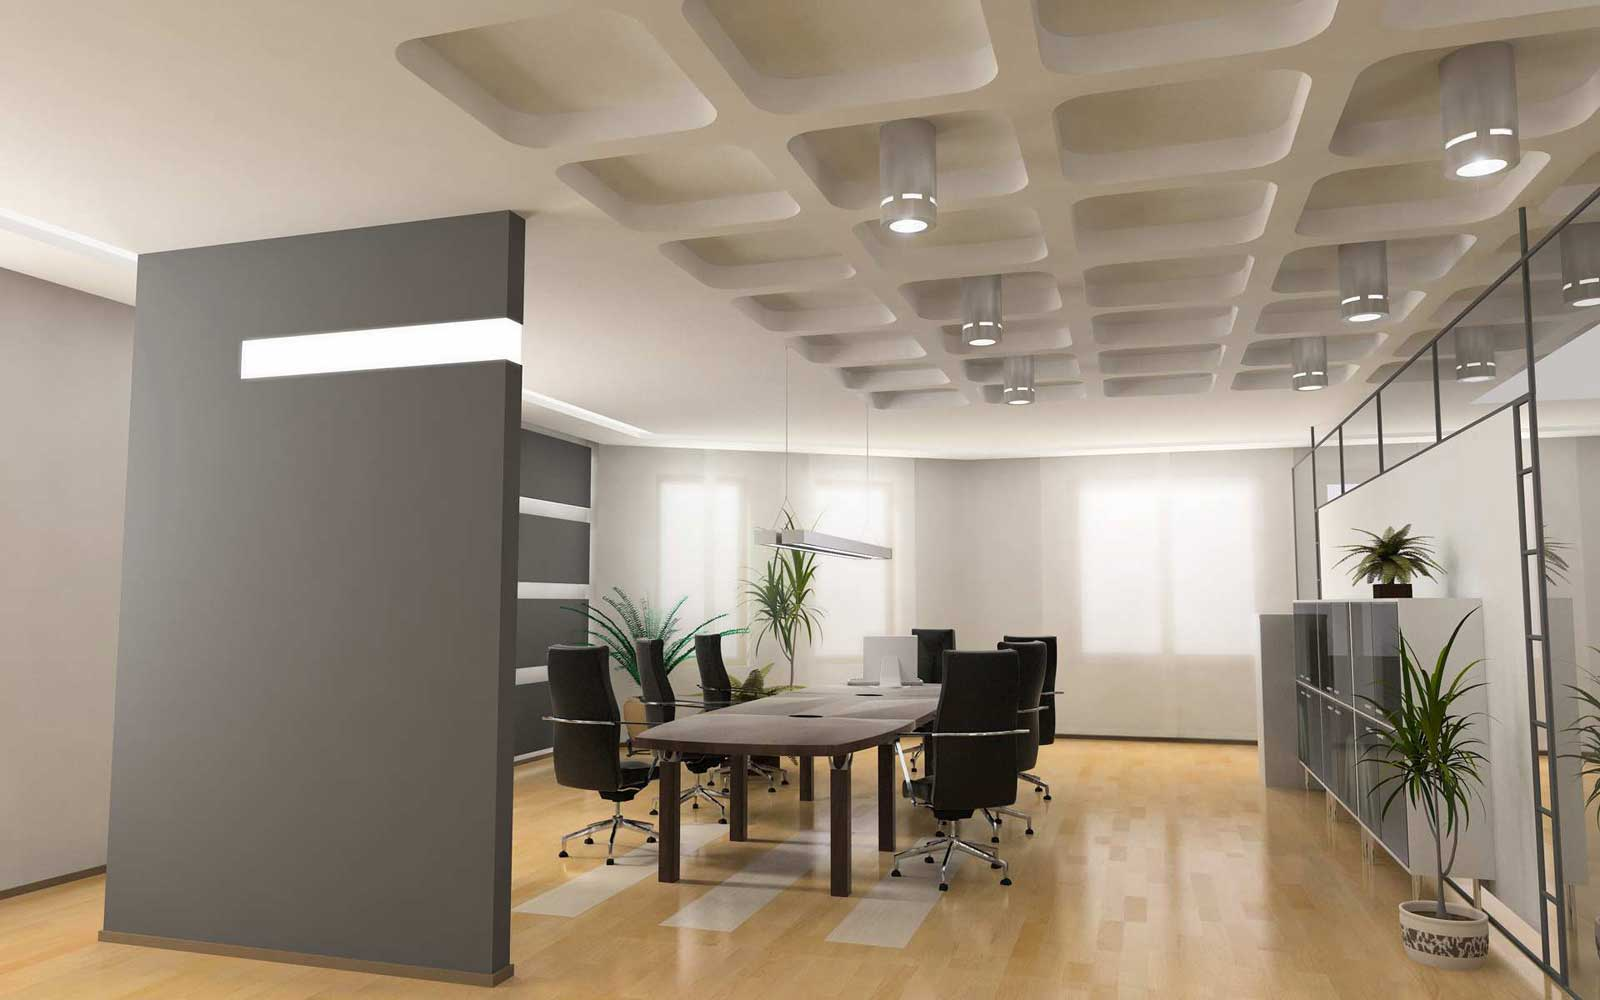 Corporate Office Design Ideas design office plants plant services corporate office plants bobs botanical design480 x 640 51 kb jpeg Mazaya Interiorscorporateofficedesignconceptforhomeoffice Mazaya Interiorscorporateofficedesignconceptforhomeoffice 25 Best Ideas About Industrial Office